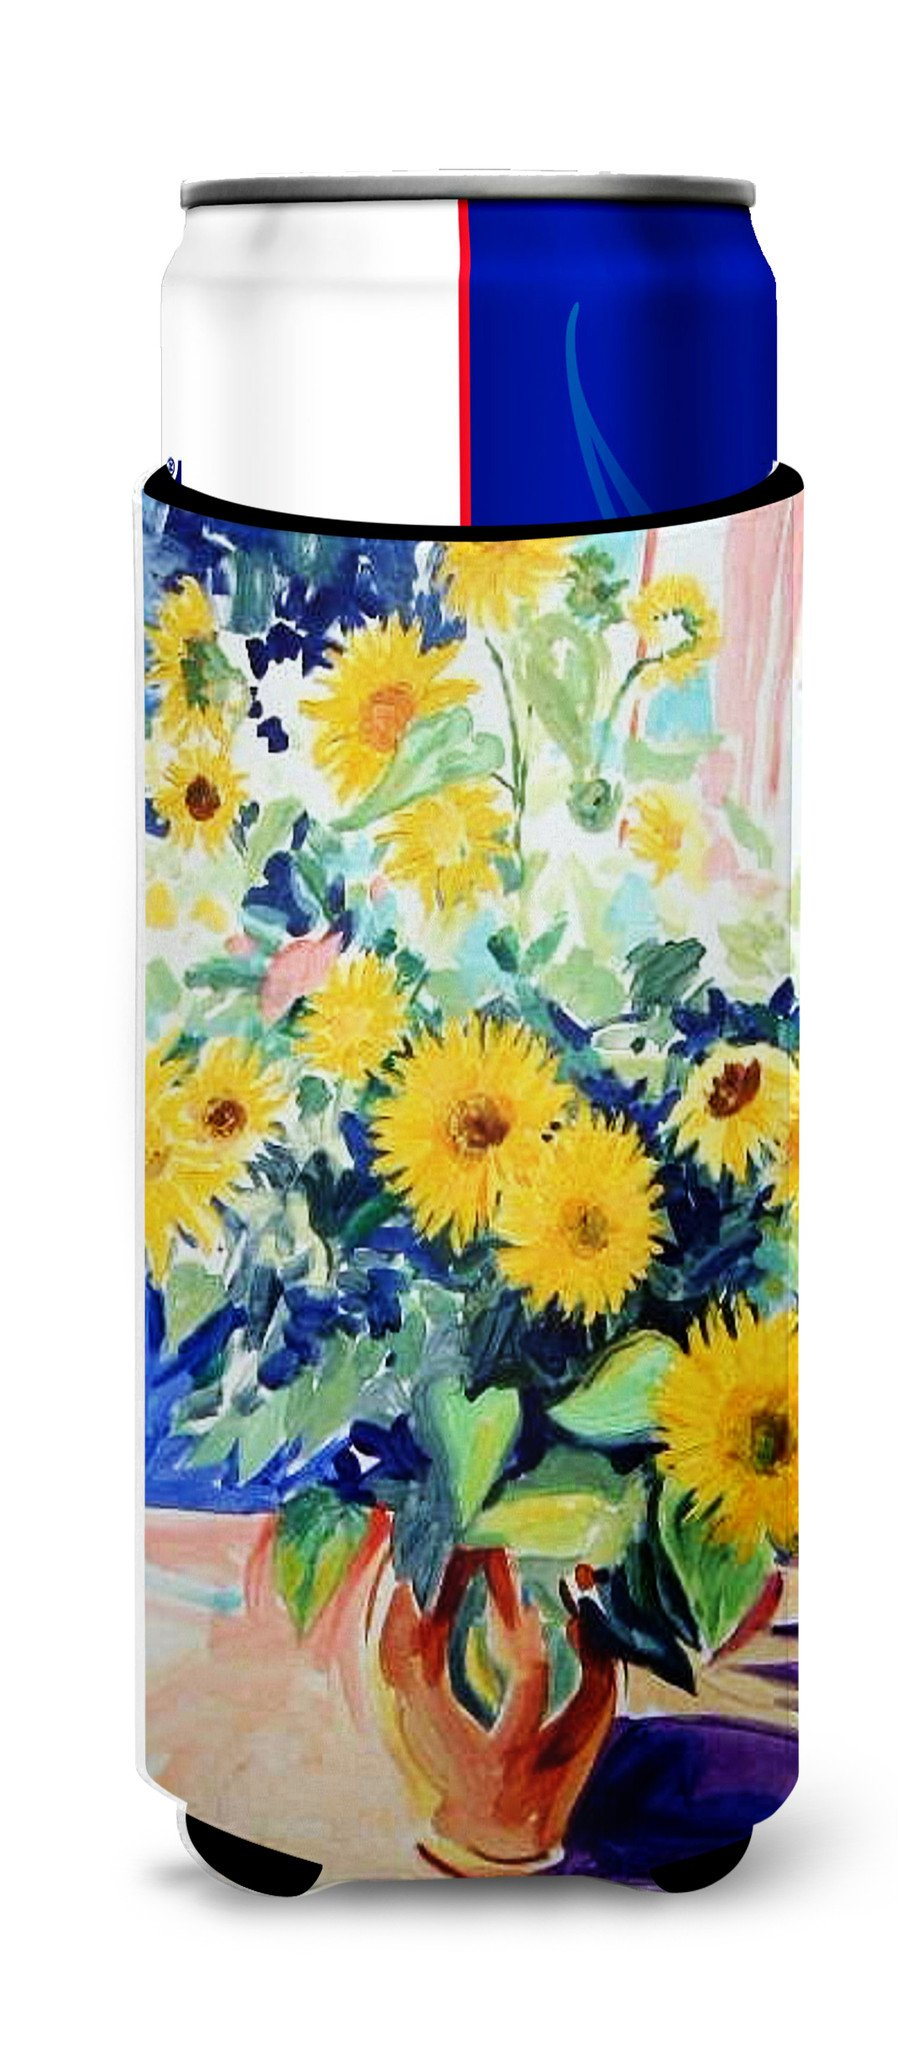 Sunflowers by Roy Avis Ultra Beverage Insulators for slim cans ARA0063MUK by Caroline's Treasures